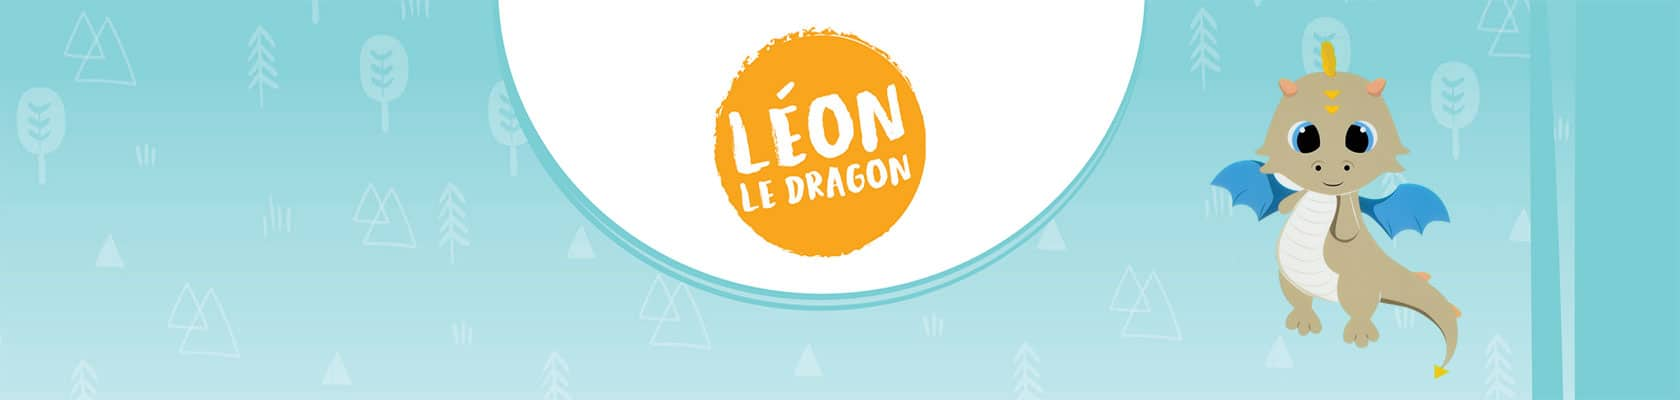 Leon the Dragon